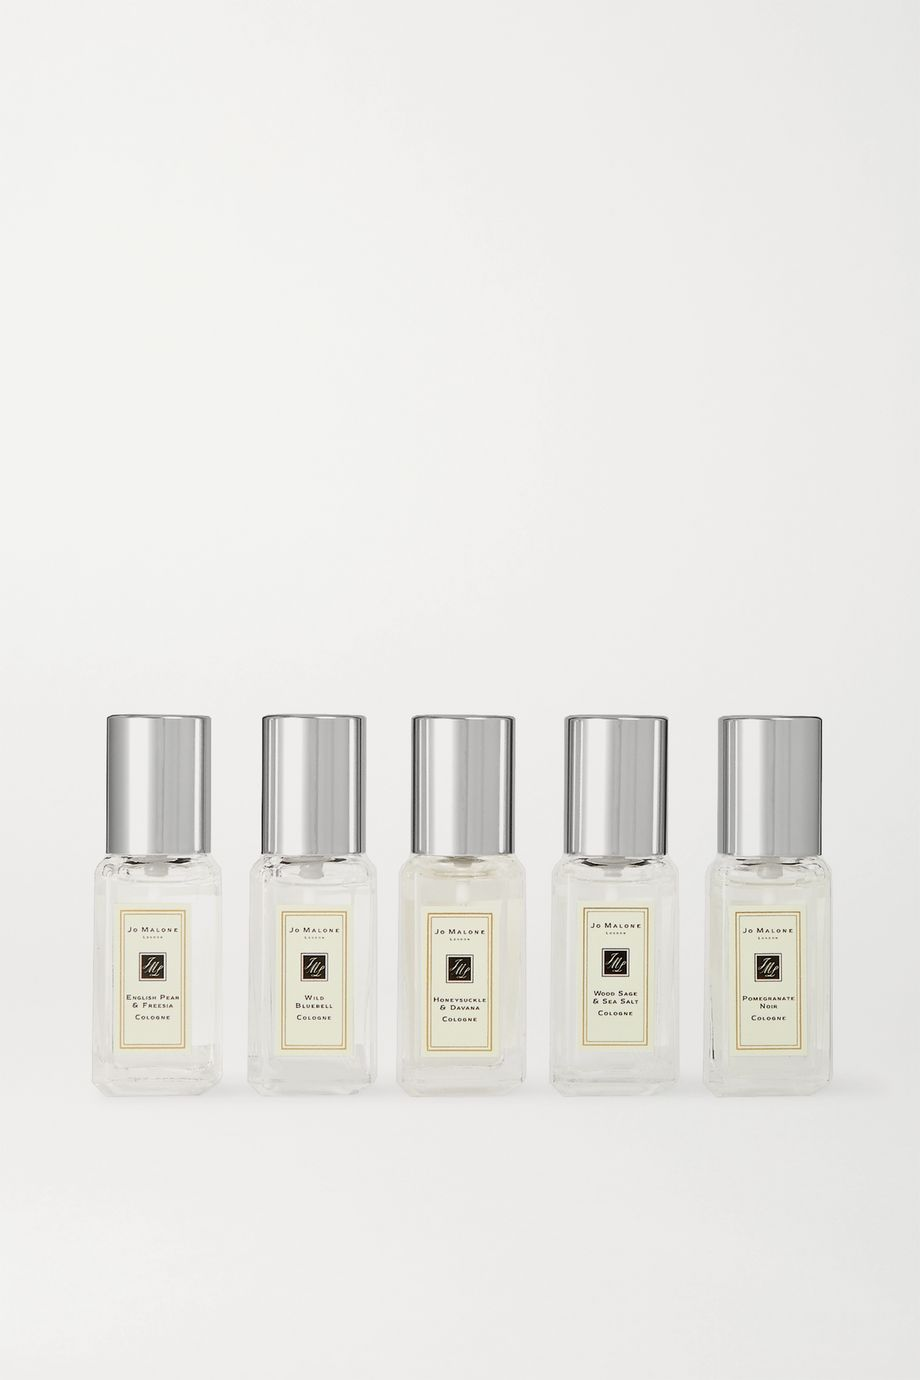 Jo Malone London Cologne Collection, 5 x 9ml